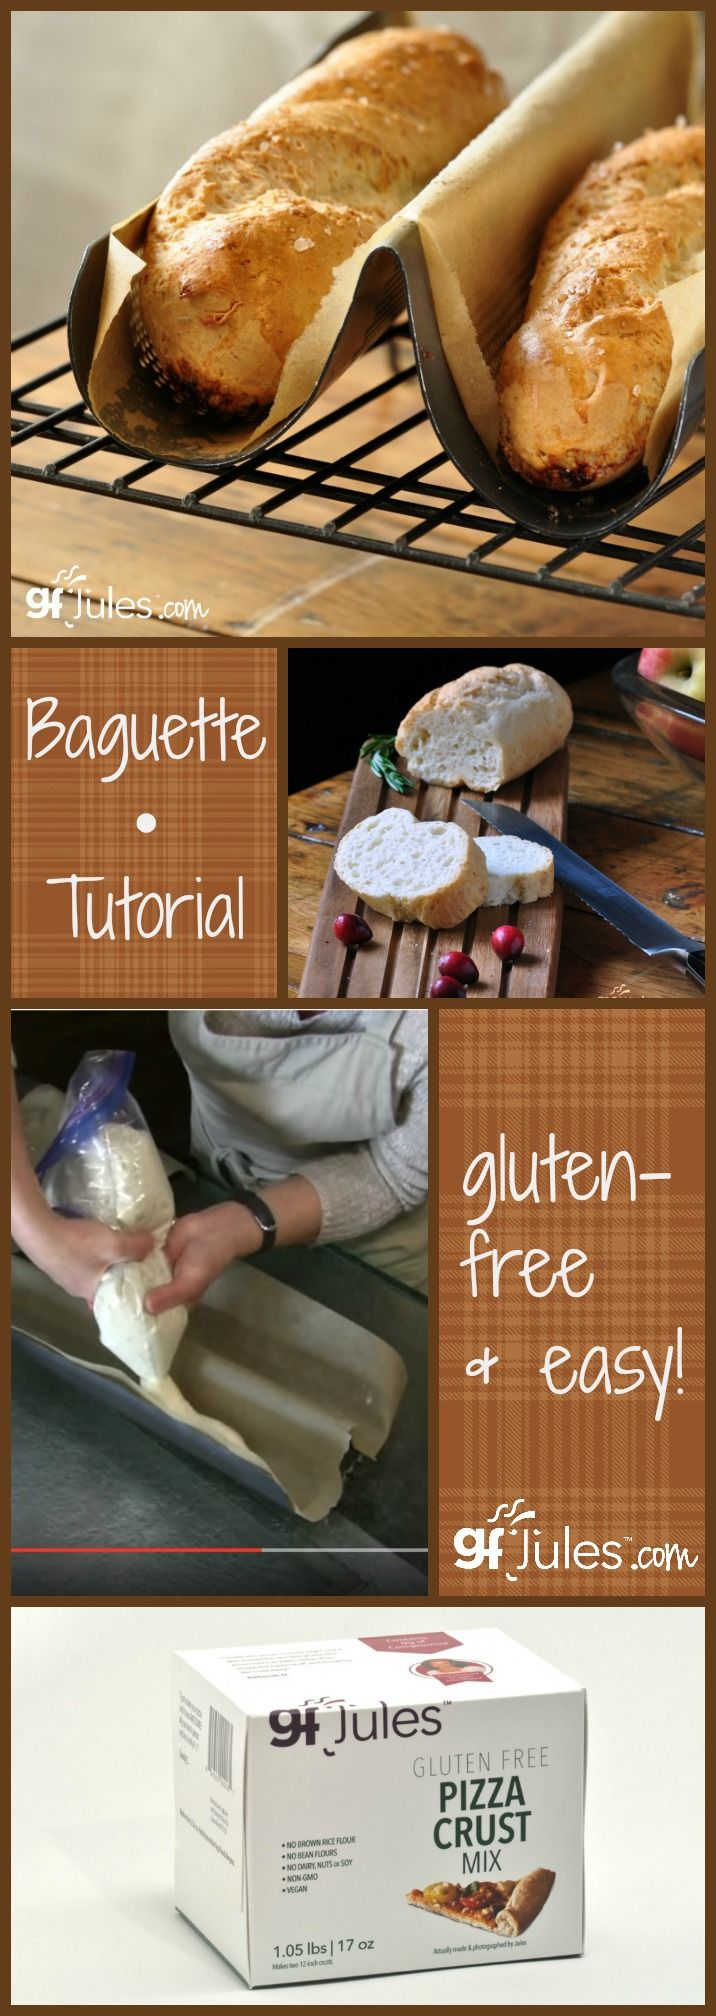 How to make gluten-free baguettes ... easy! These crunchy on the outside, soft, chewy baguettes are perfect for any meal, party or daily bread. And with this tutorial, you'll be making them deliciously in no time! #glutenfree #glutenfreebread #baguette gfJules.com